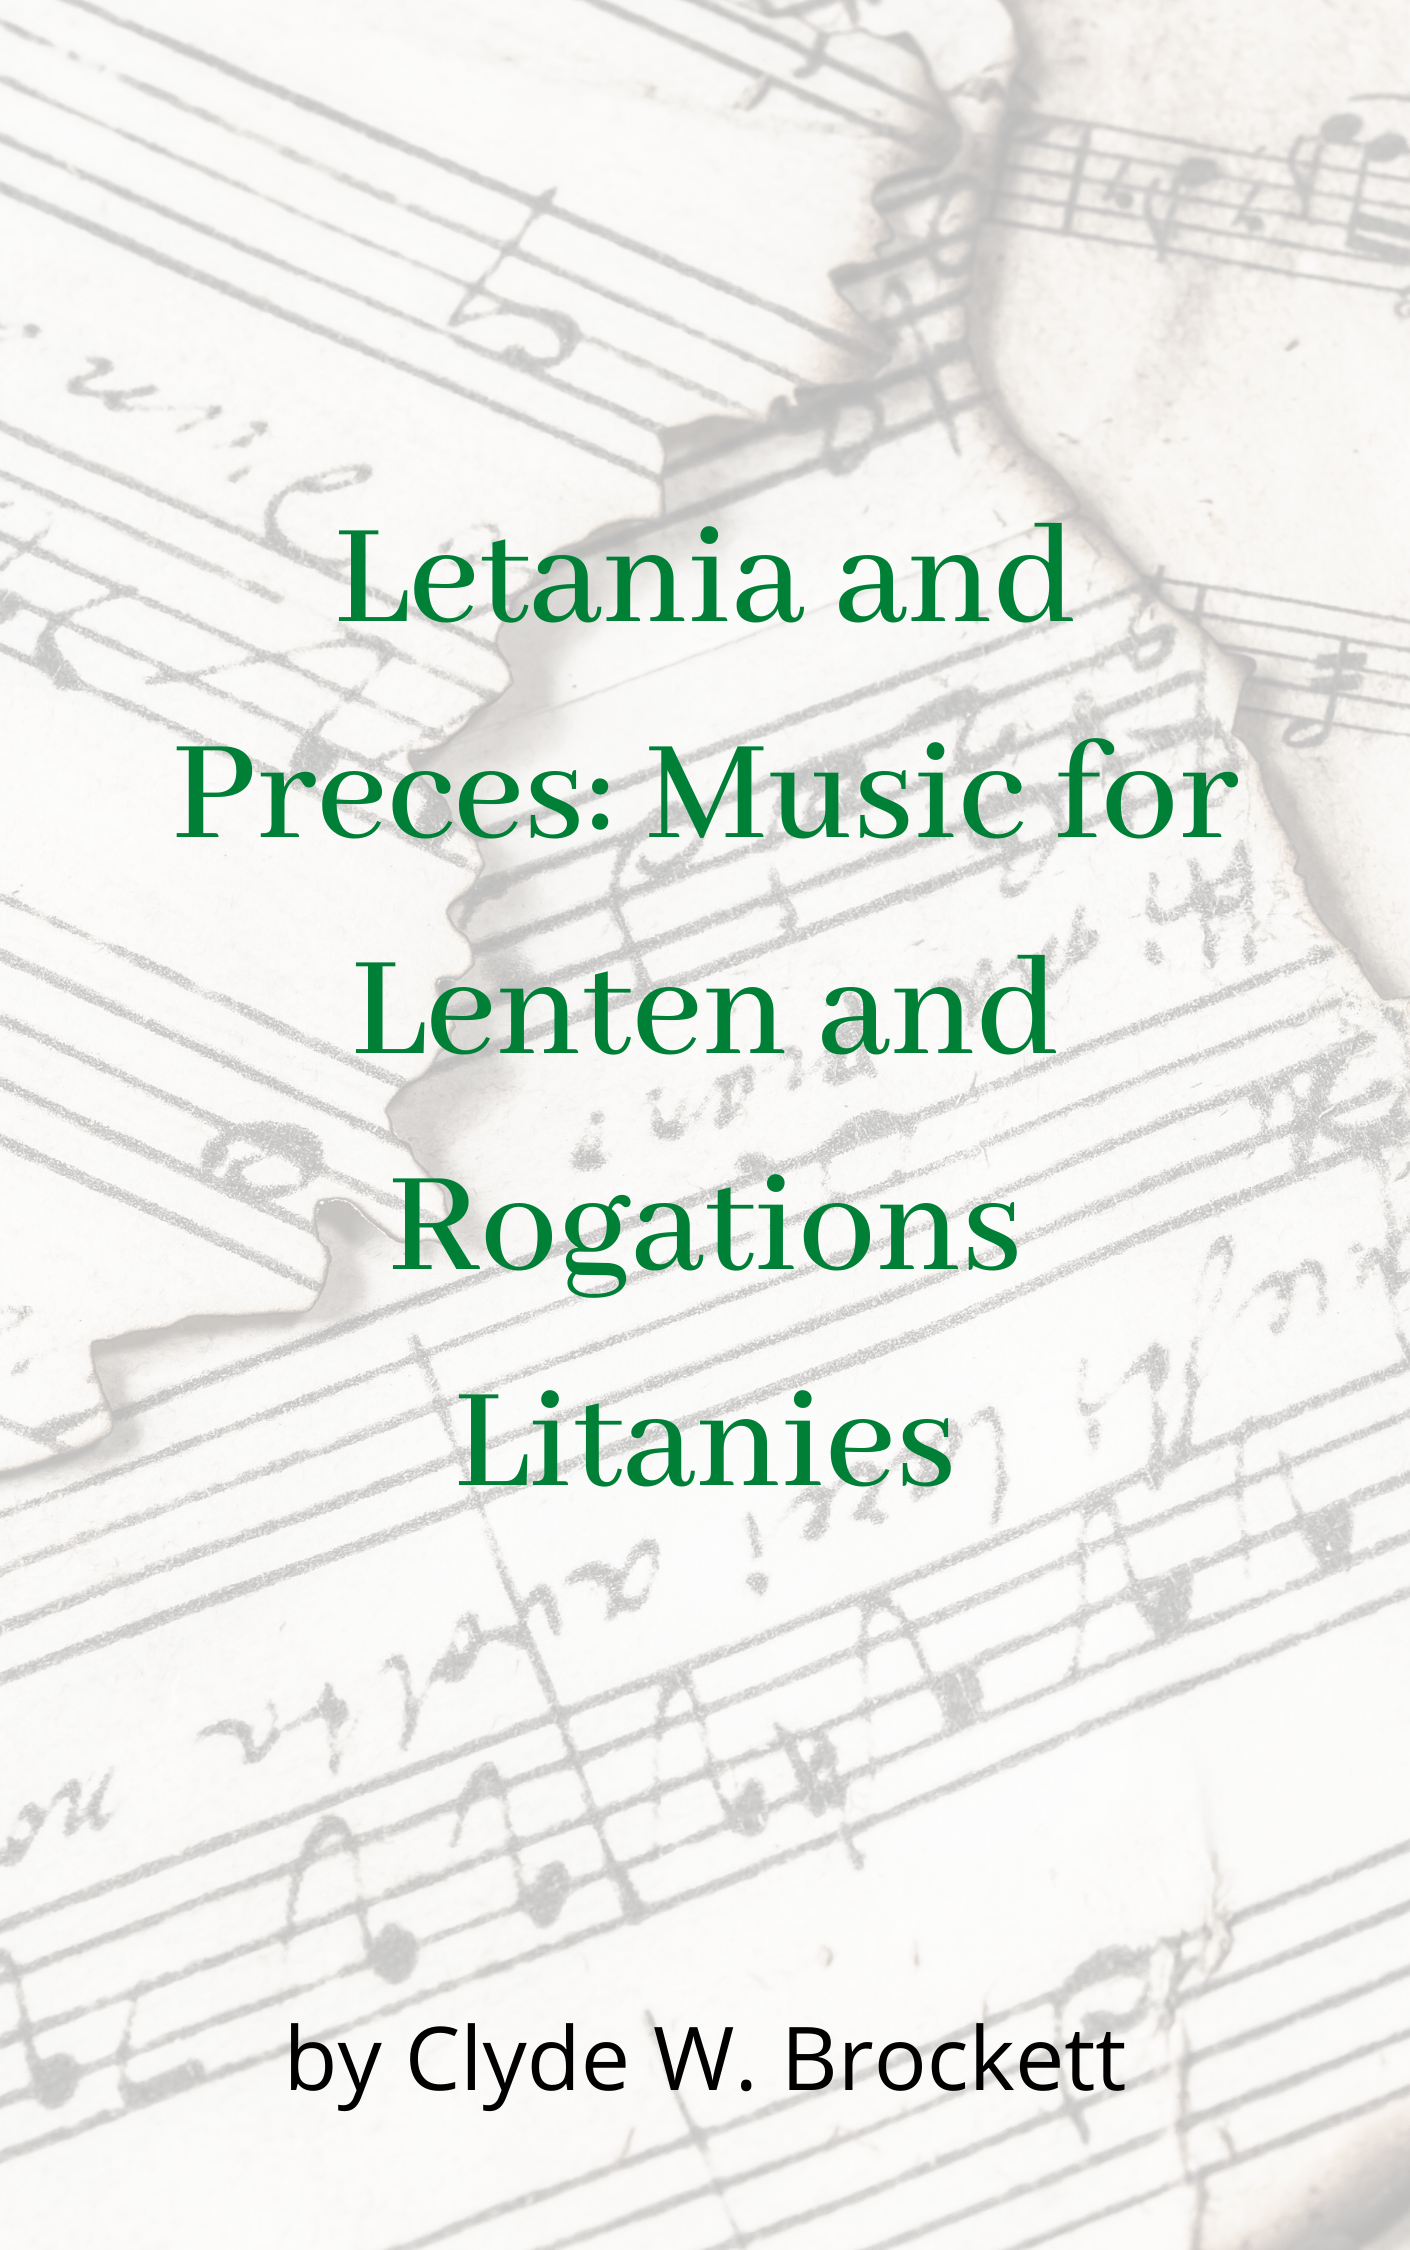 Letania and Preces: Music for Lenten and Rogations Litanies